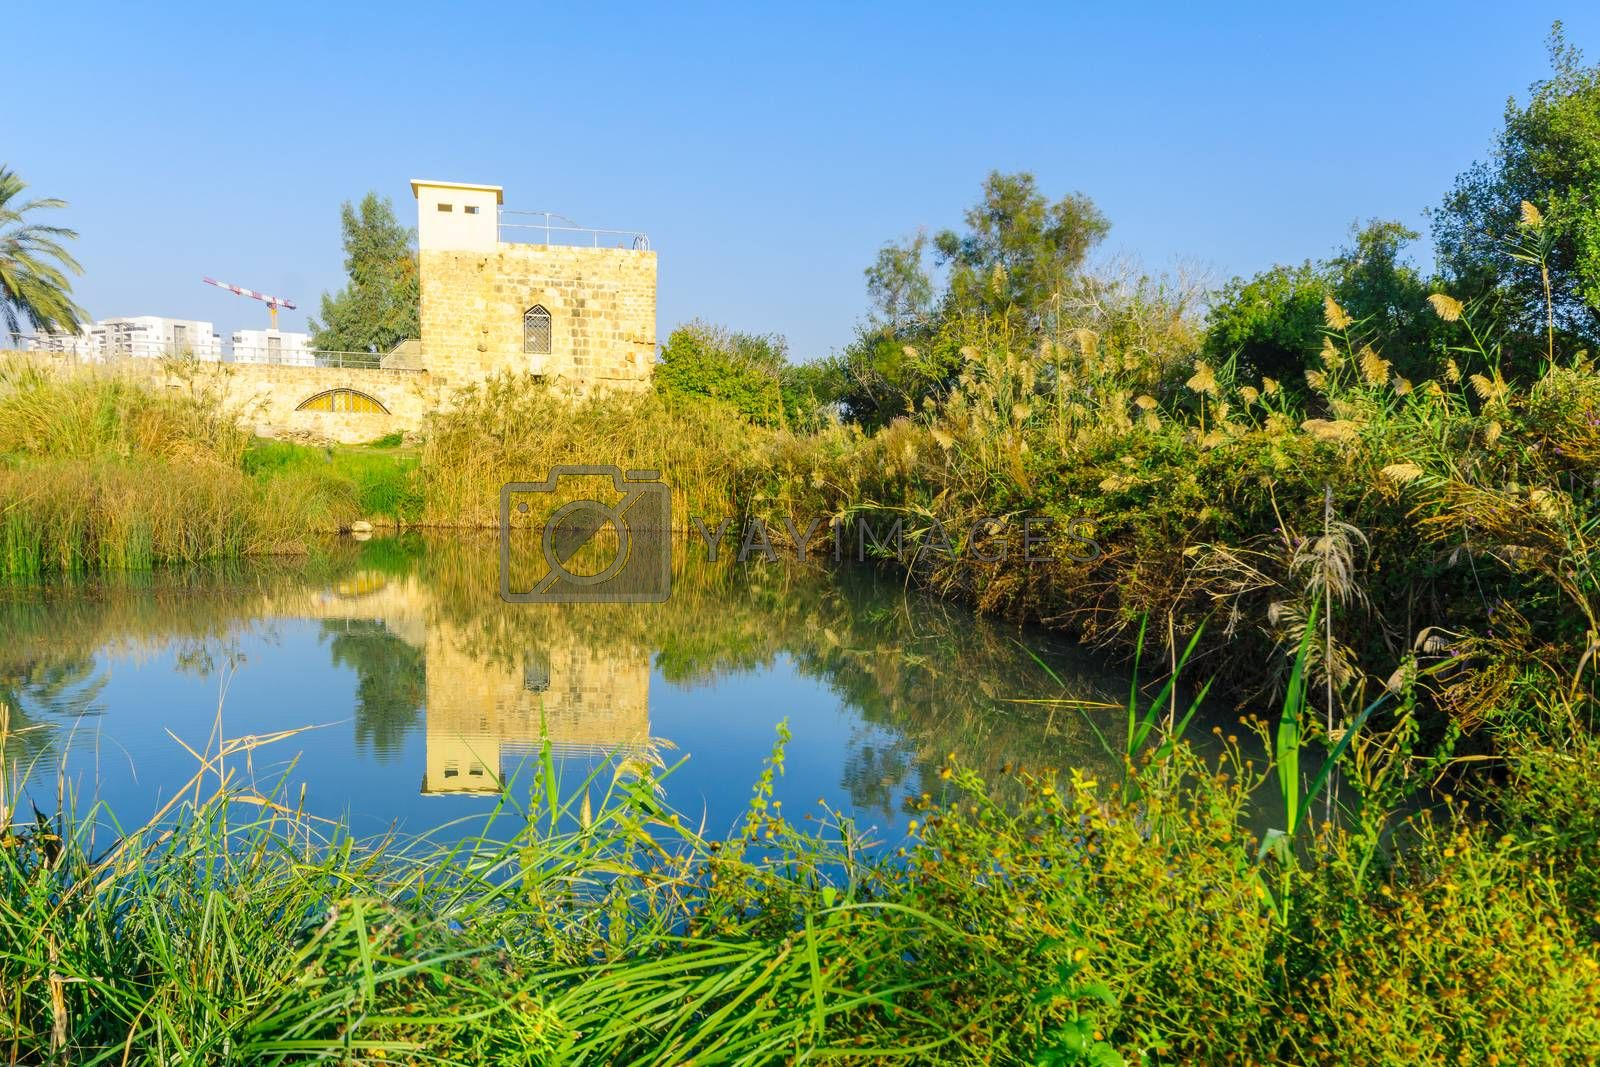 View of an Ancient Flour Mill, from Roman and crusader era, and a pond, in En Afek nature reserve, northern Israel